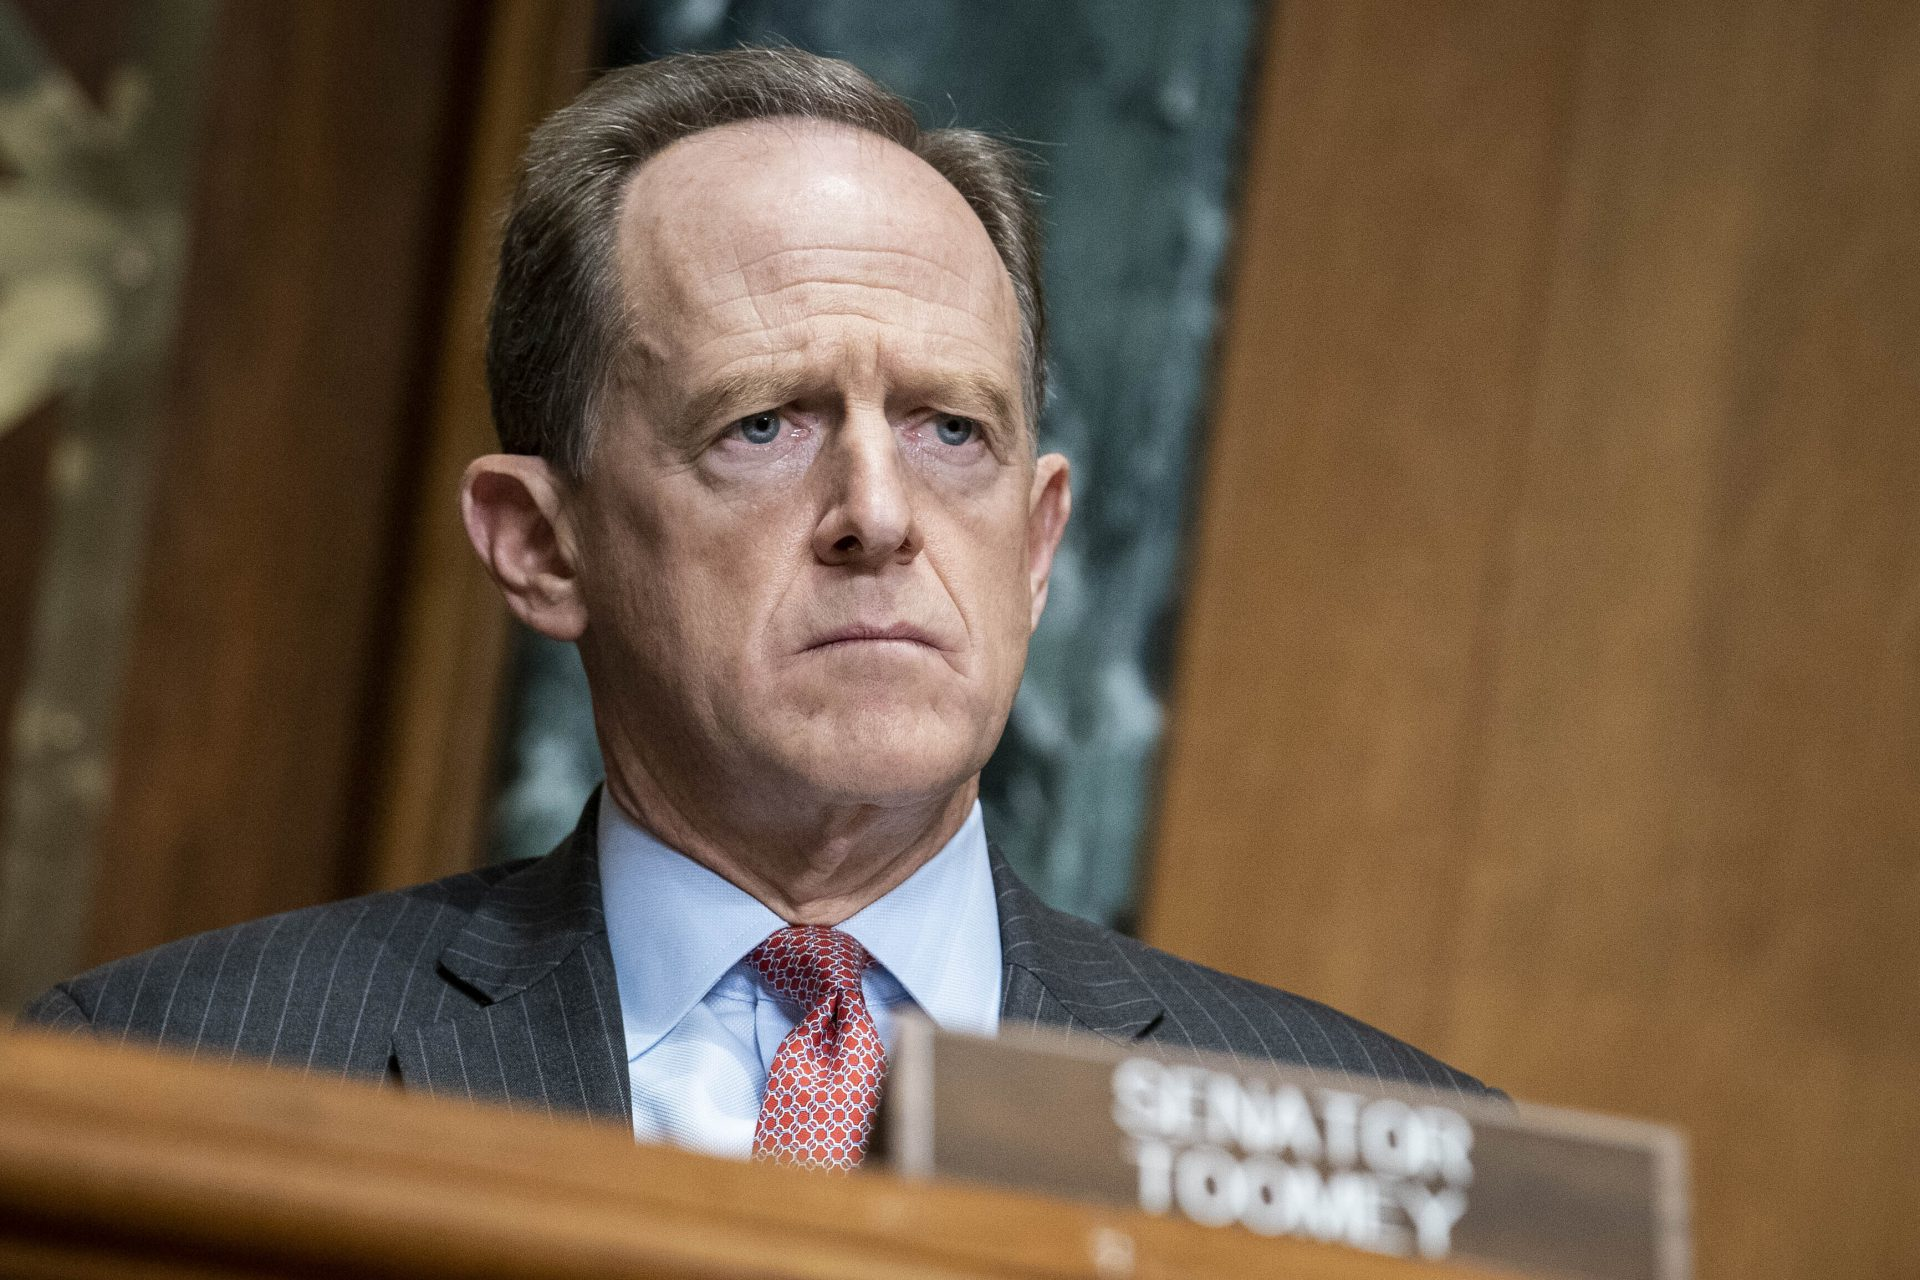 Sen. Pat Toomey, R-Pa., during a hearing on Capitol Hill in Washington, Thursday Dec. 10, 2020.